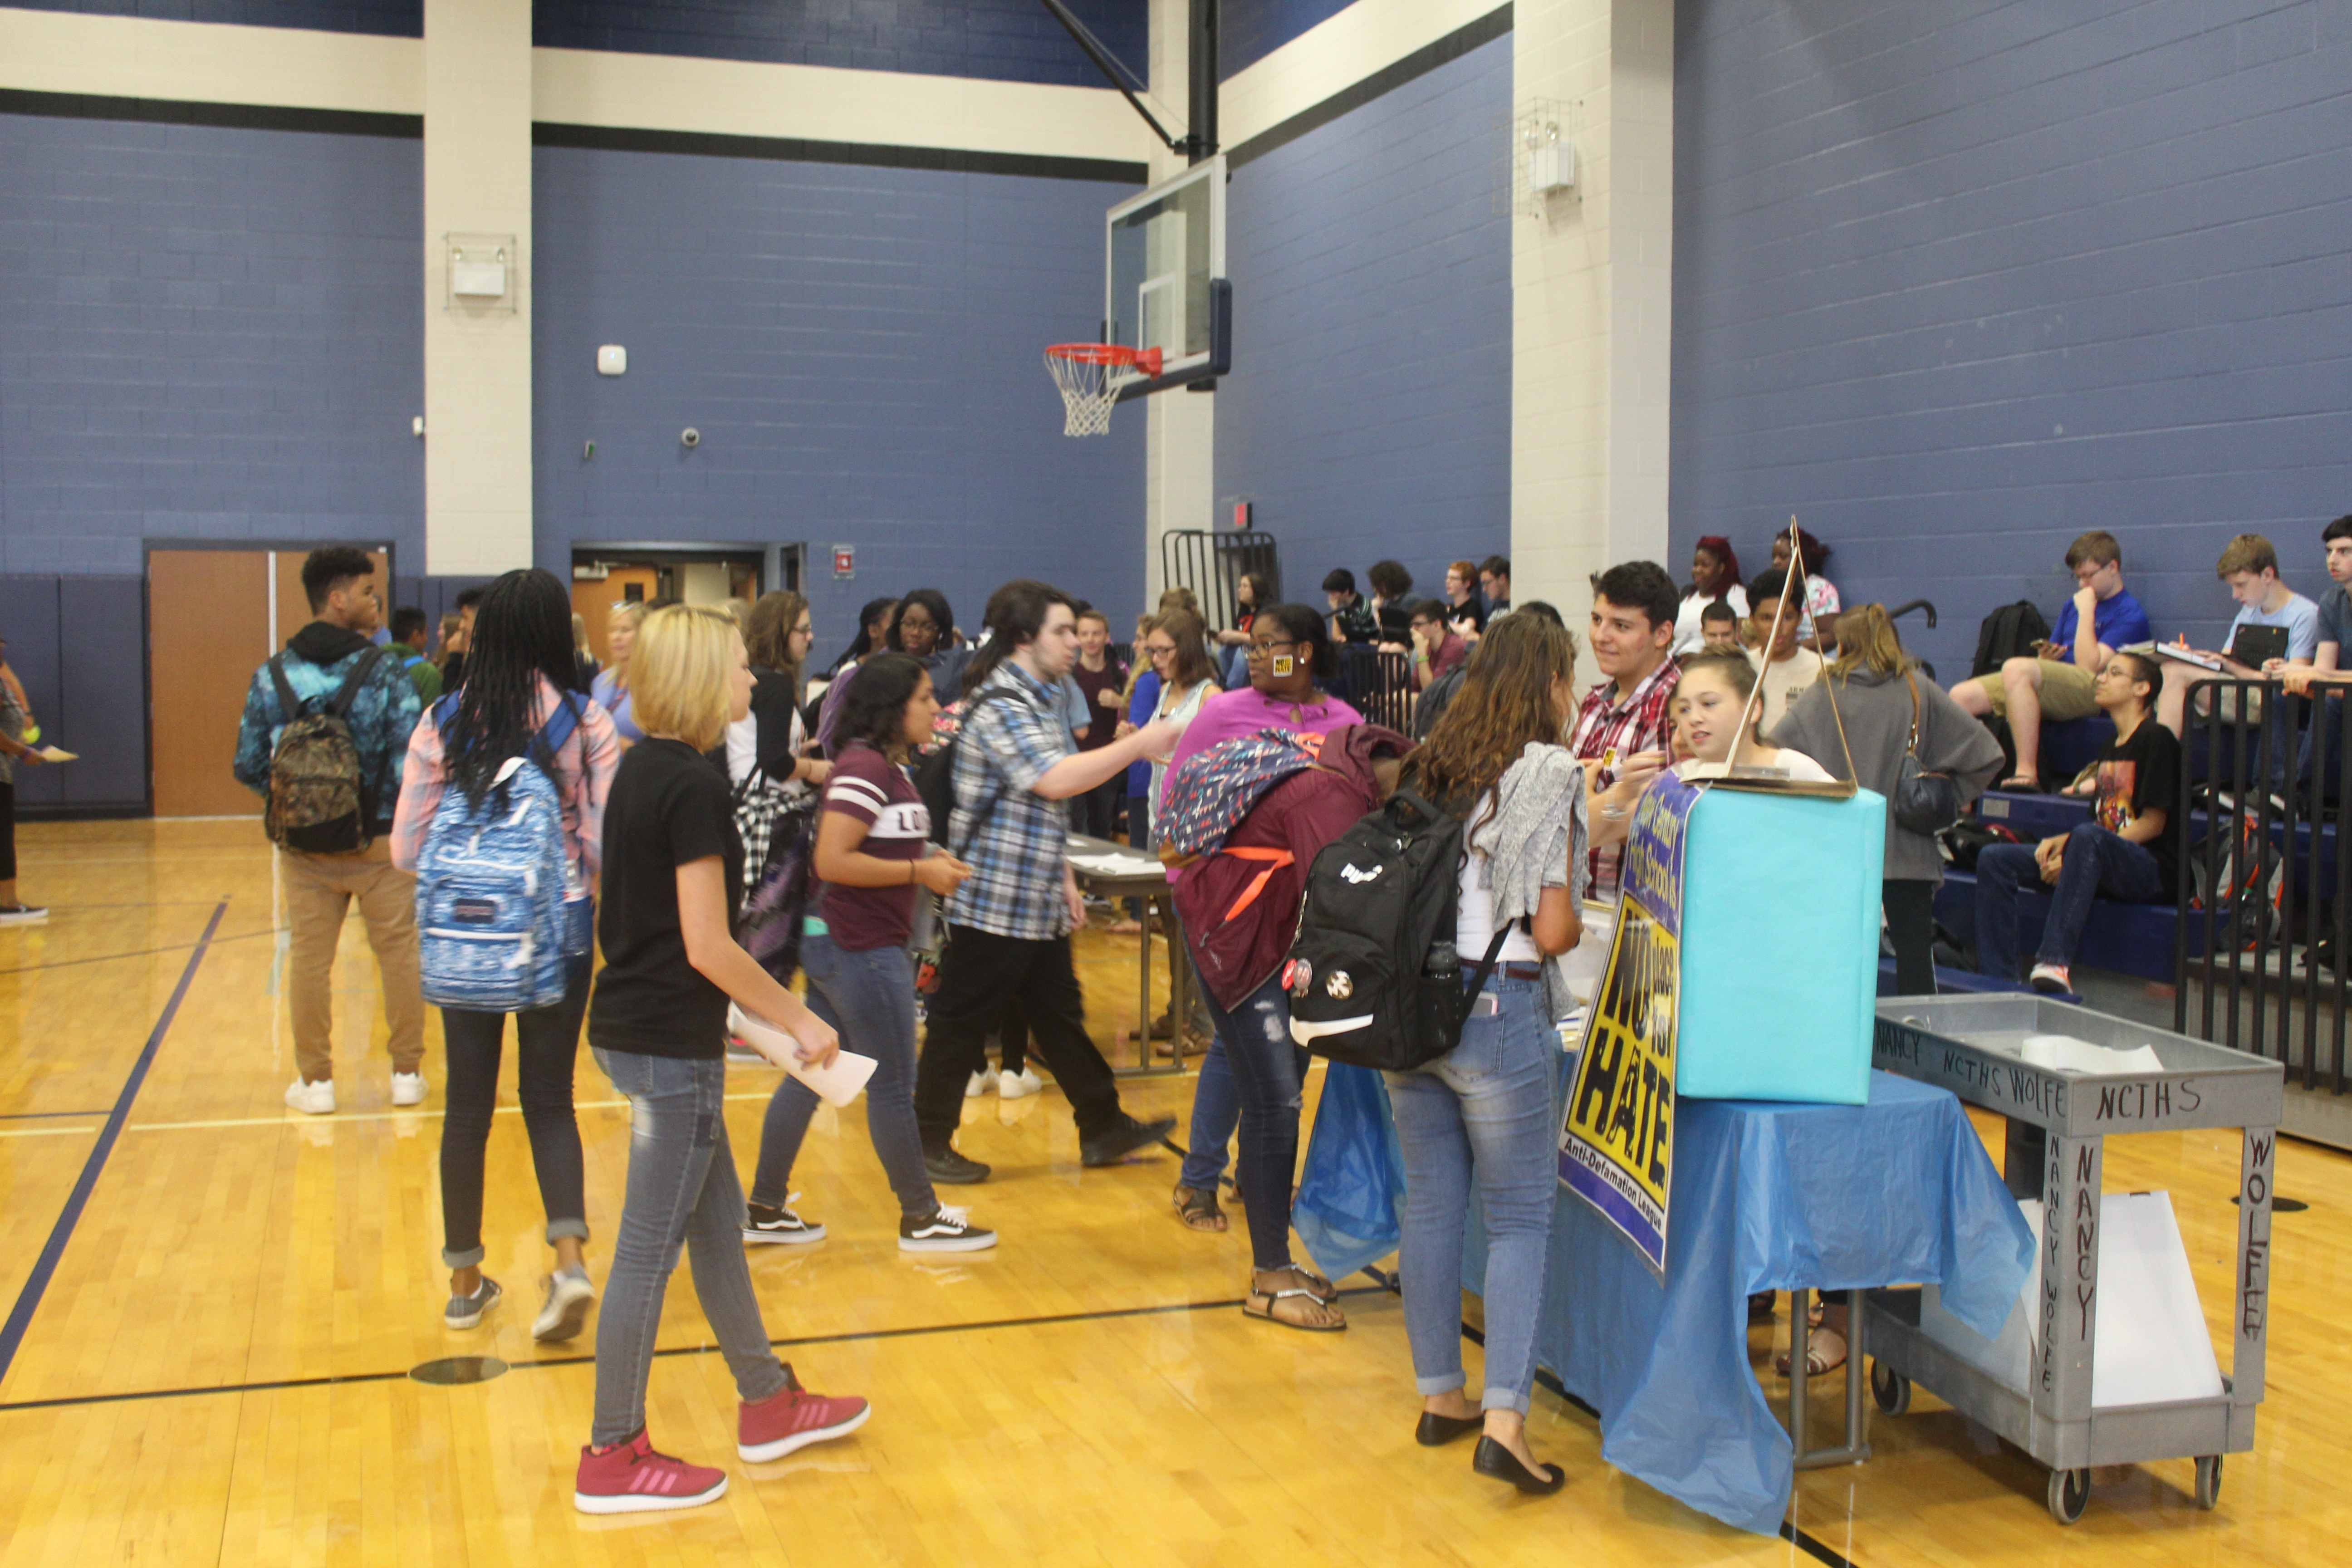 New Century students learning about clubs at the club fair